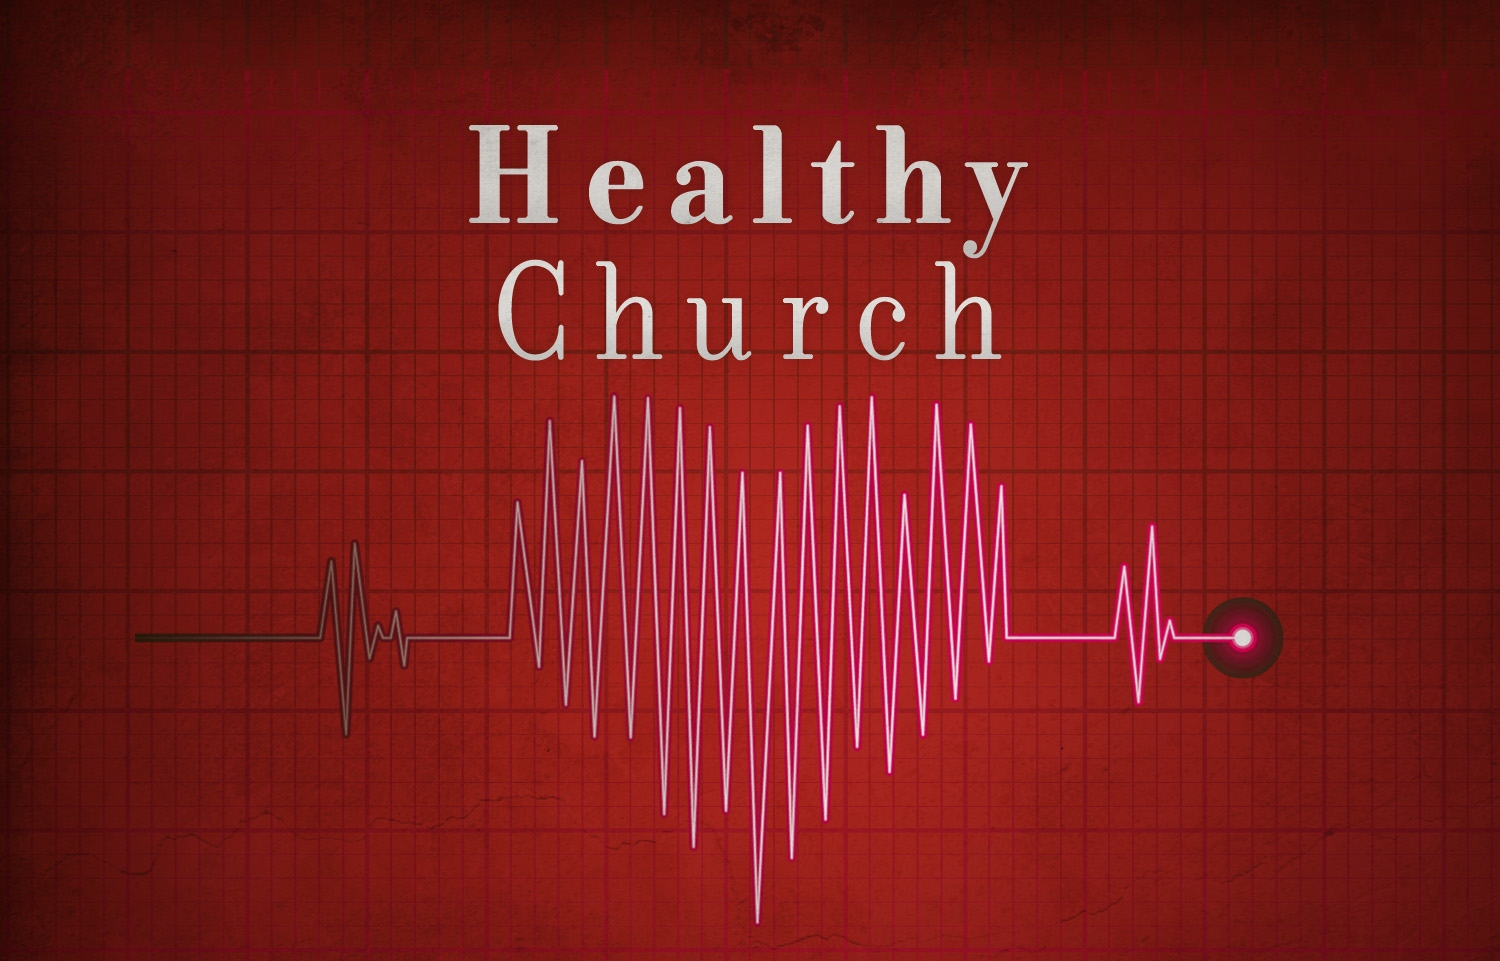 I recently came across these foundational building blocks of healthy churches from tony morgan